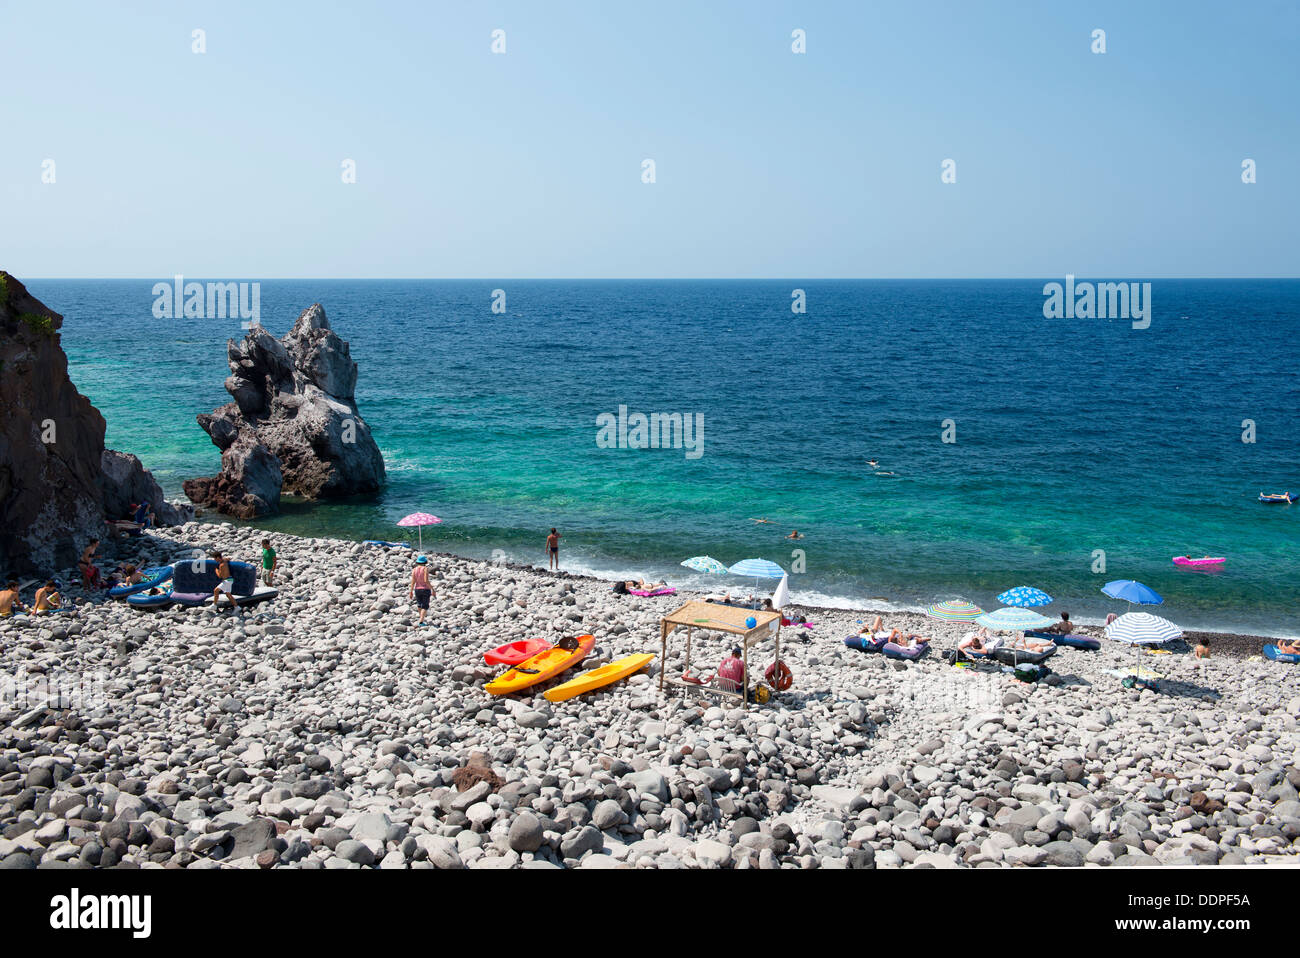 The rocky beach at Malfa, Salina, The Aeolian Islands, Messina, Sicily, Italy - Stock Image